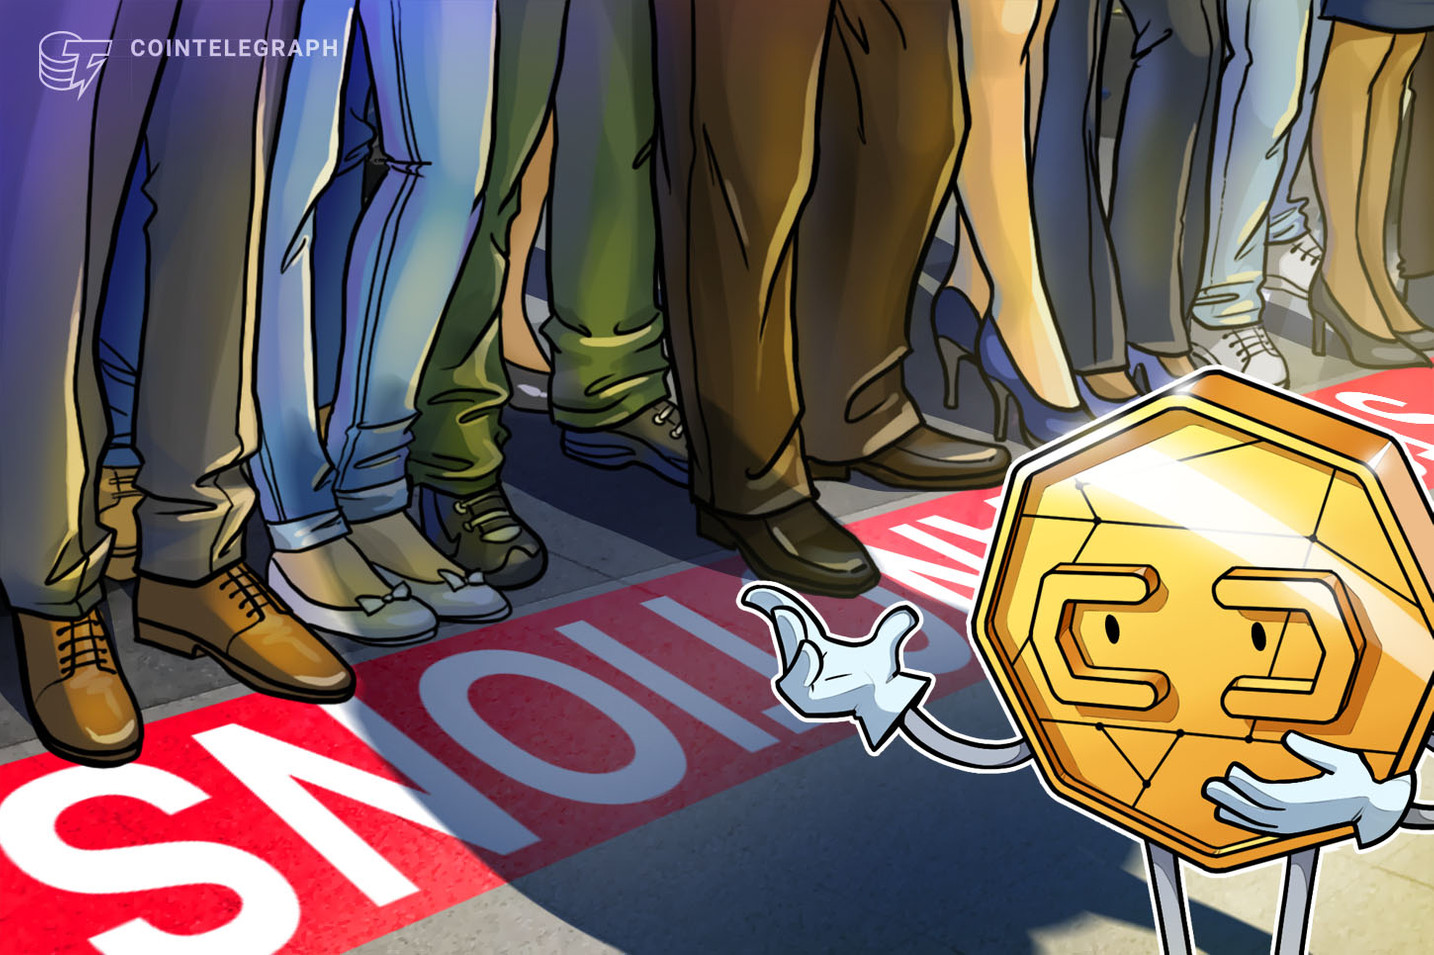 US Treasury Dept sanctions crypto OTC broker Suex for alleged role in facilitating transactions for ransomware attacks